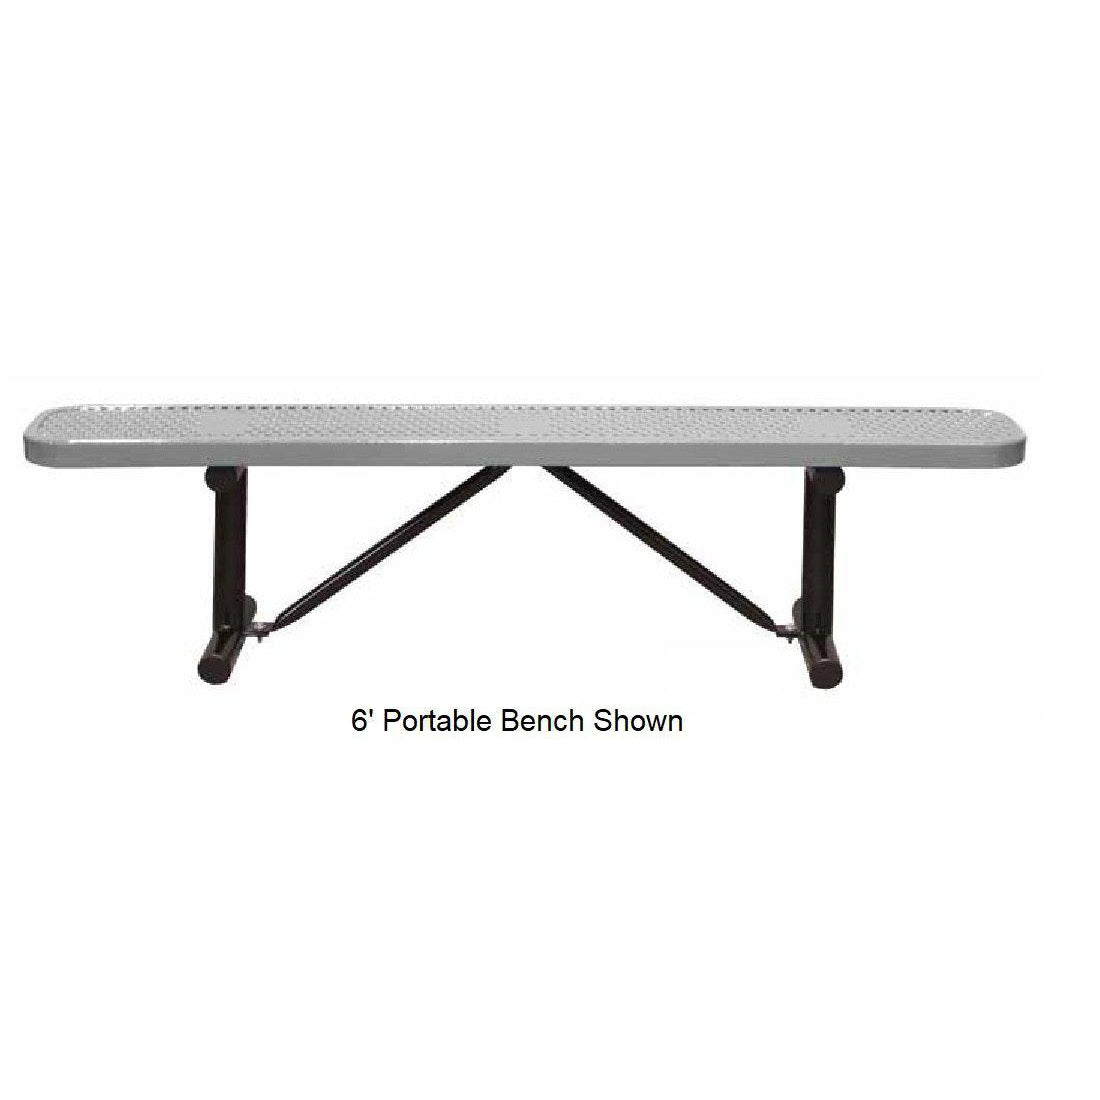 6' Standard Perforated Bench Without Back, Surface Mount